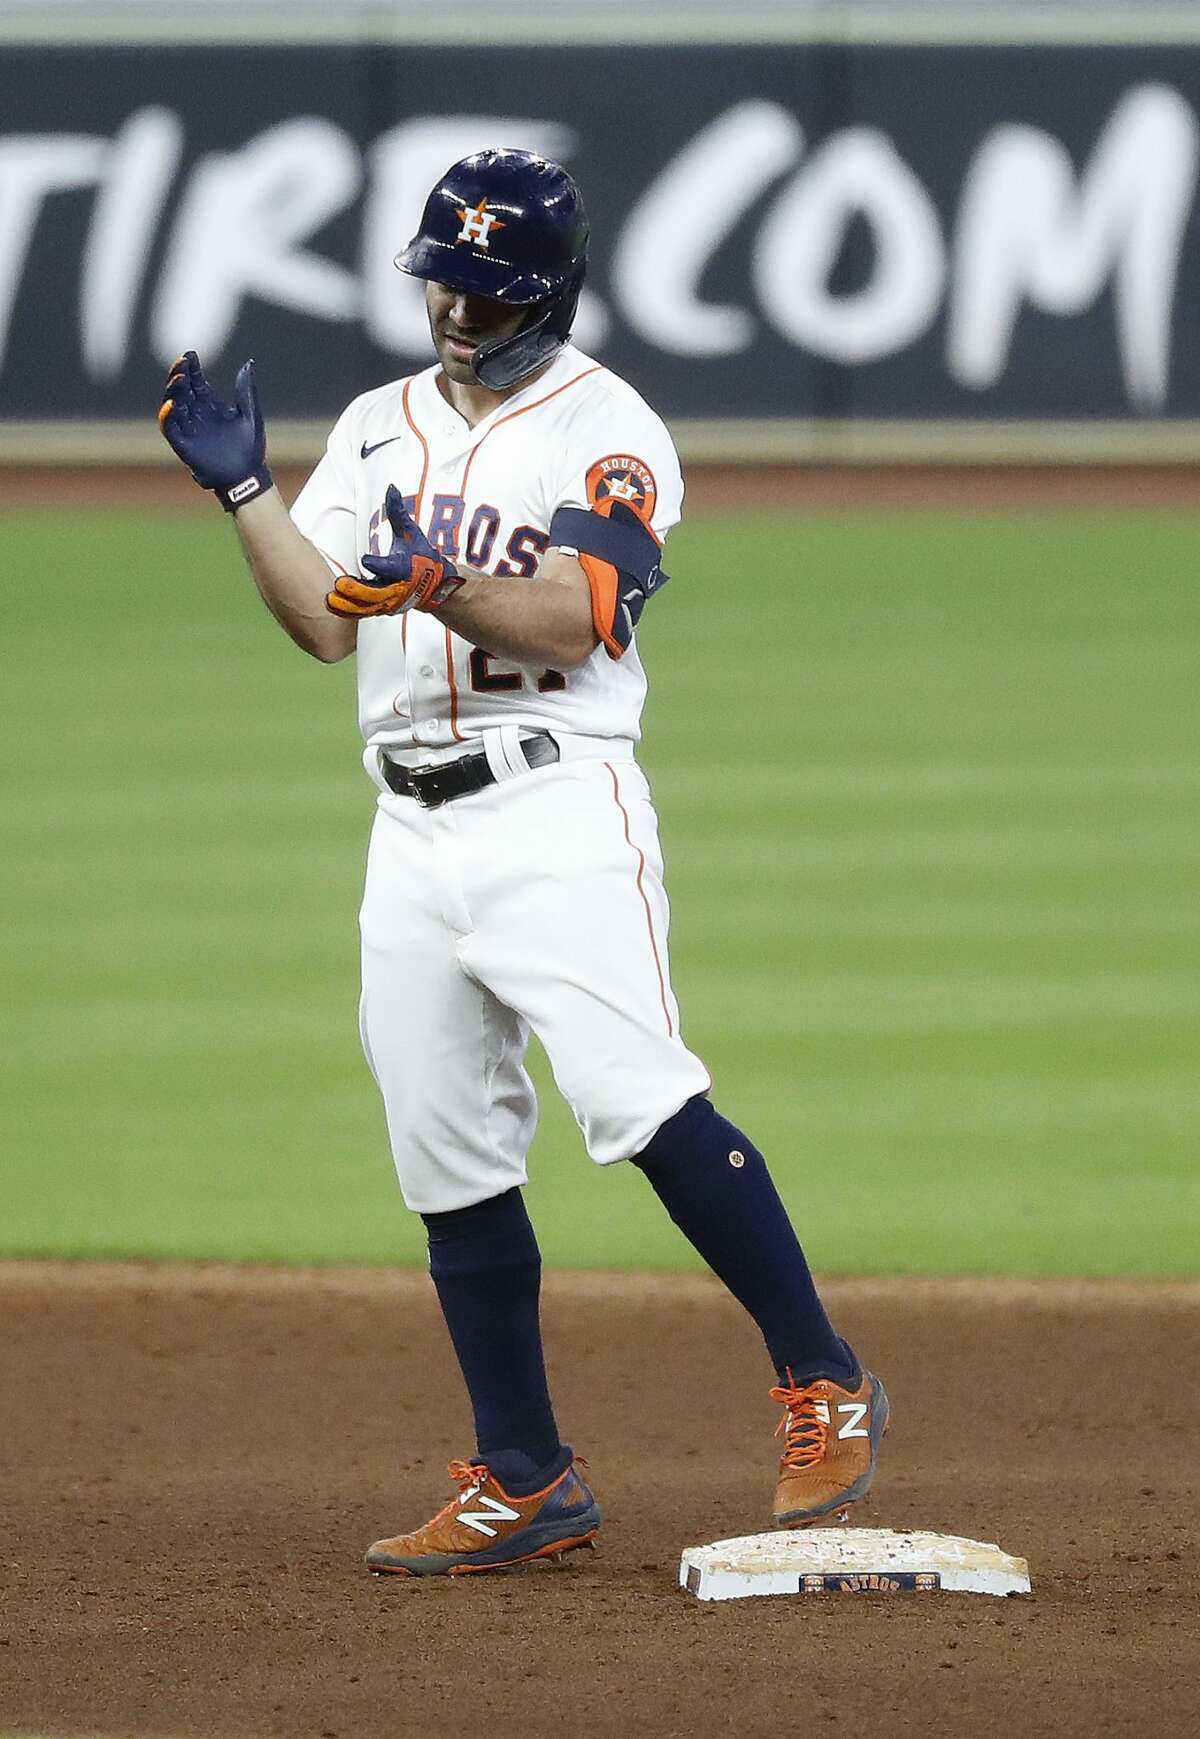 Houston Astros Jose Altuve (27) stands on second base after hitting a double off of Arizona Diamondbacks relief pitcher Hector Rondon during the seventh inning of an MLB baseball game at Minute Maid Park, Friday, September 18, 2020, in Houston.